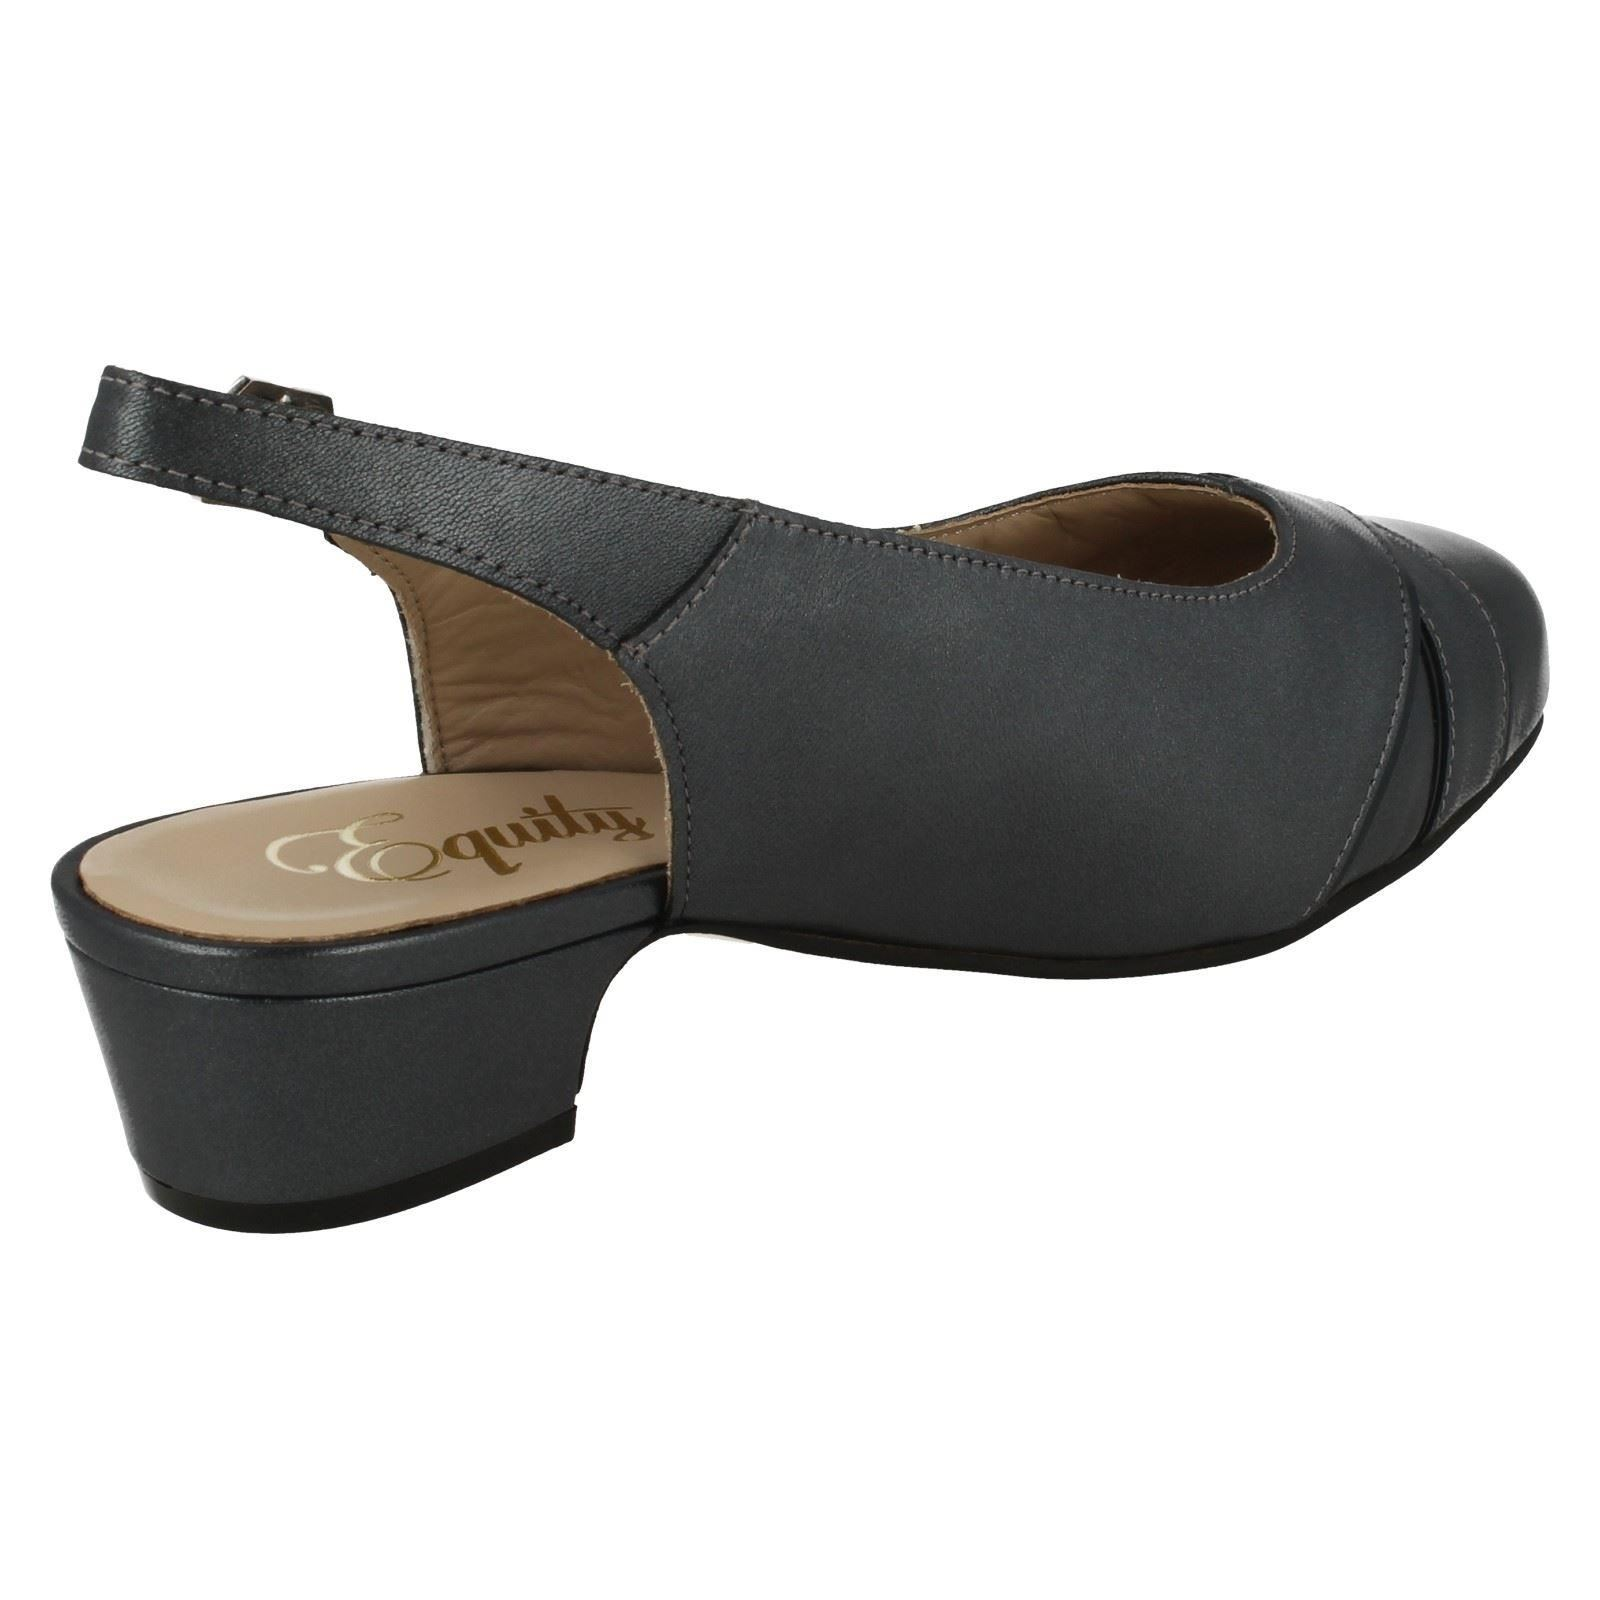 Ladies Equity Low Heel Casual Slingback Shoes Cressy